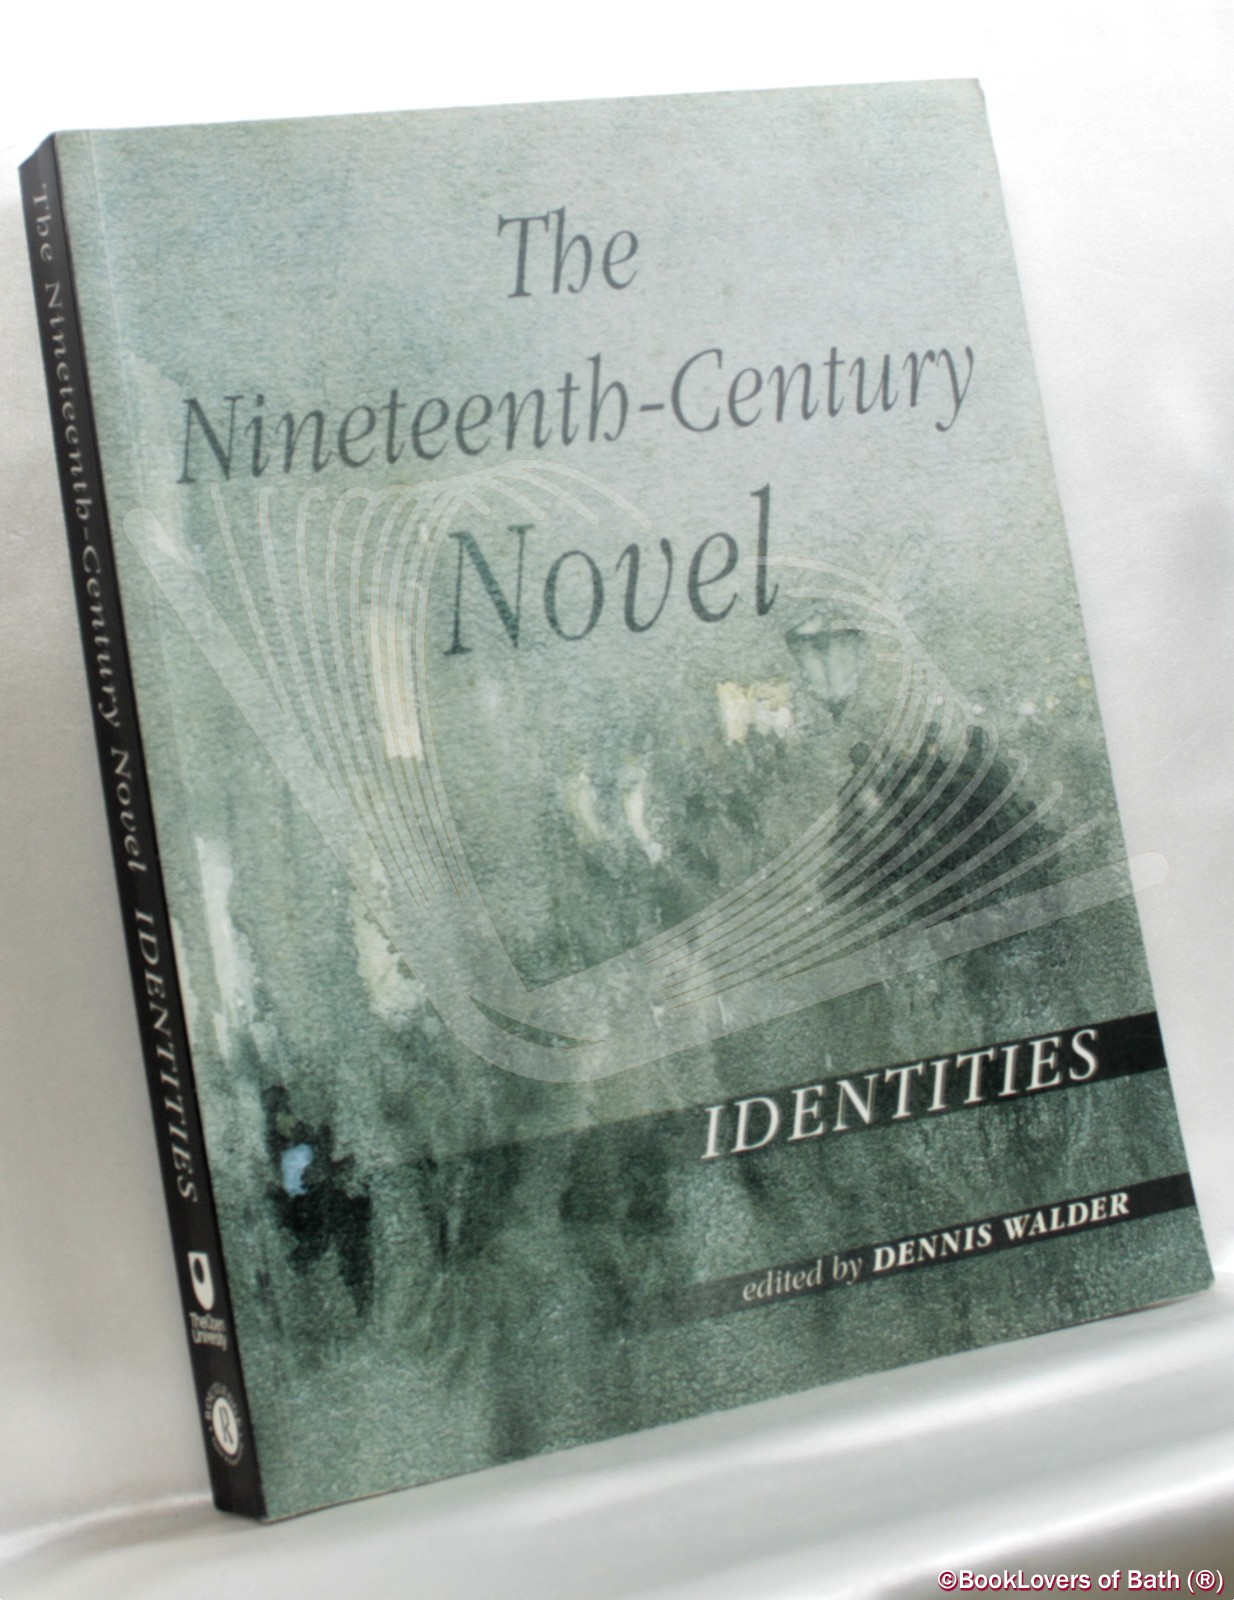 The Nineteenth-Century Novel: Identities - Edited by Dennis Walder